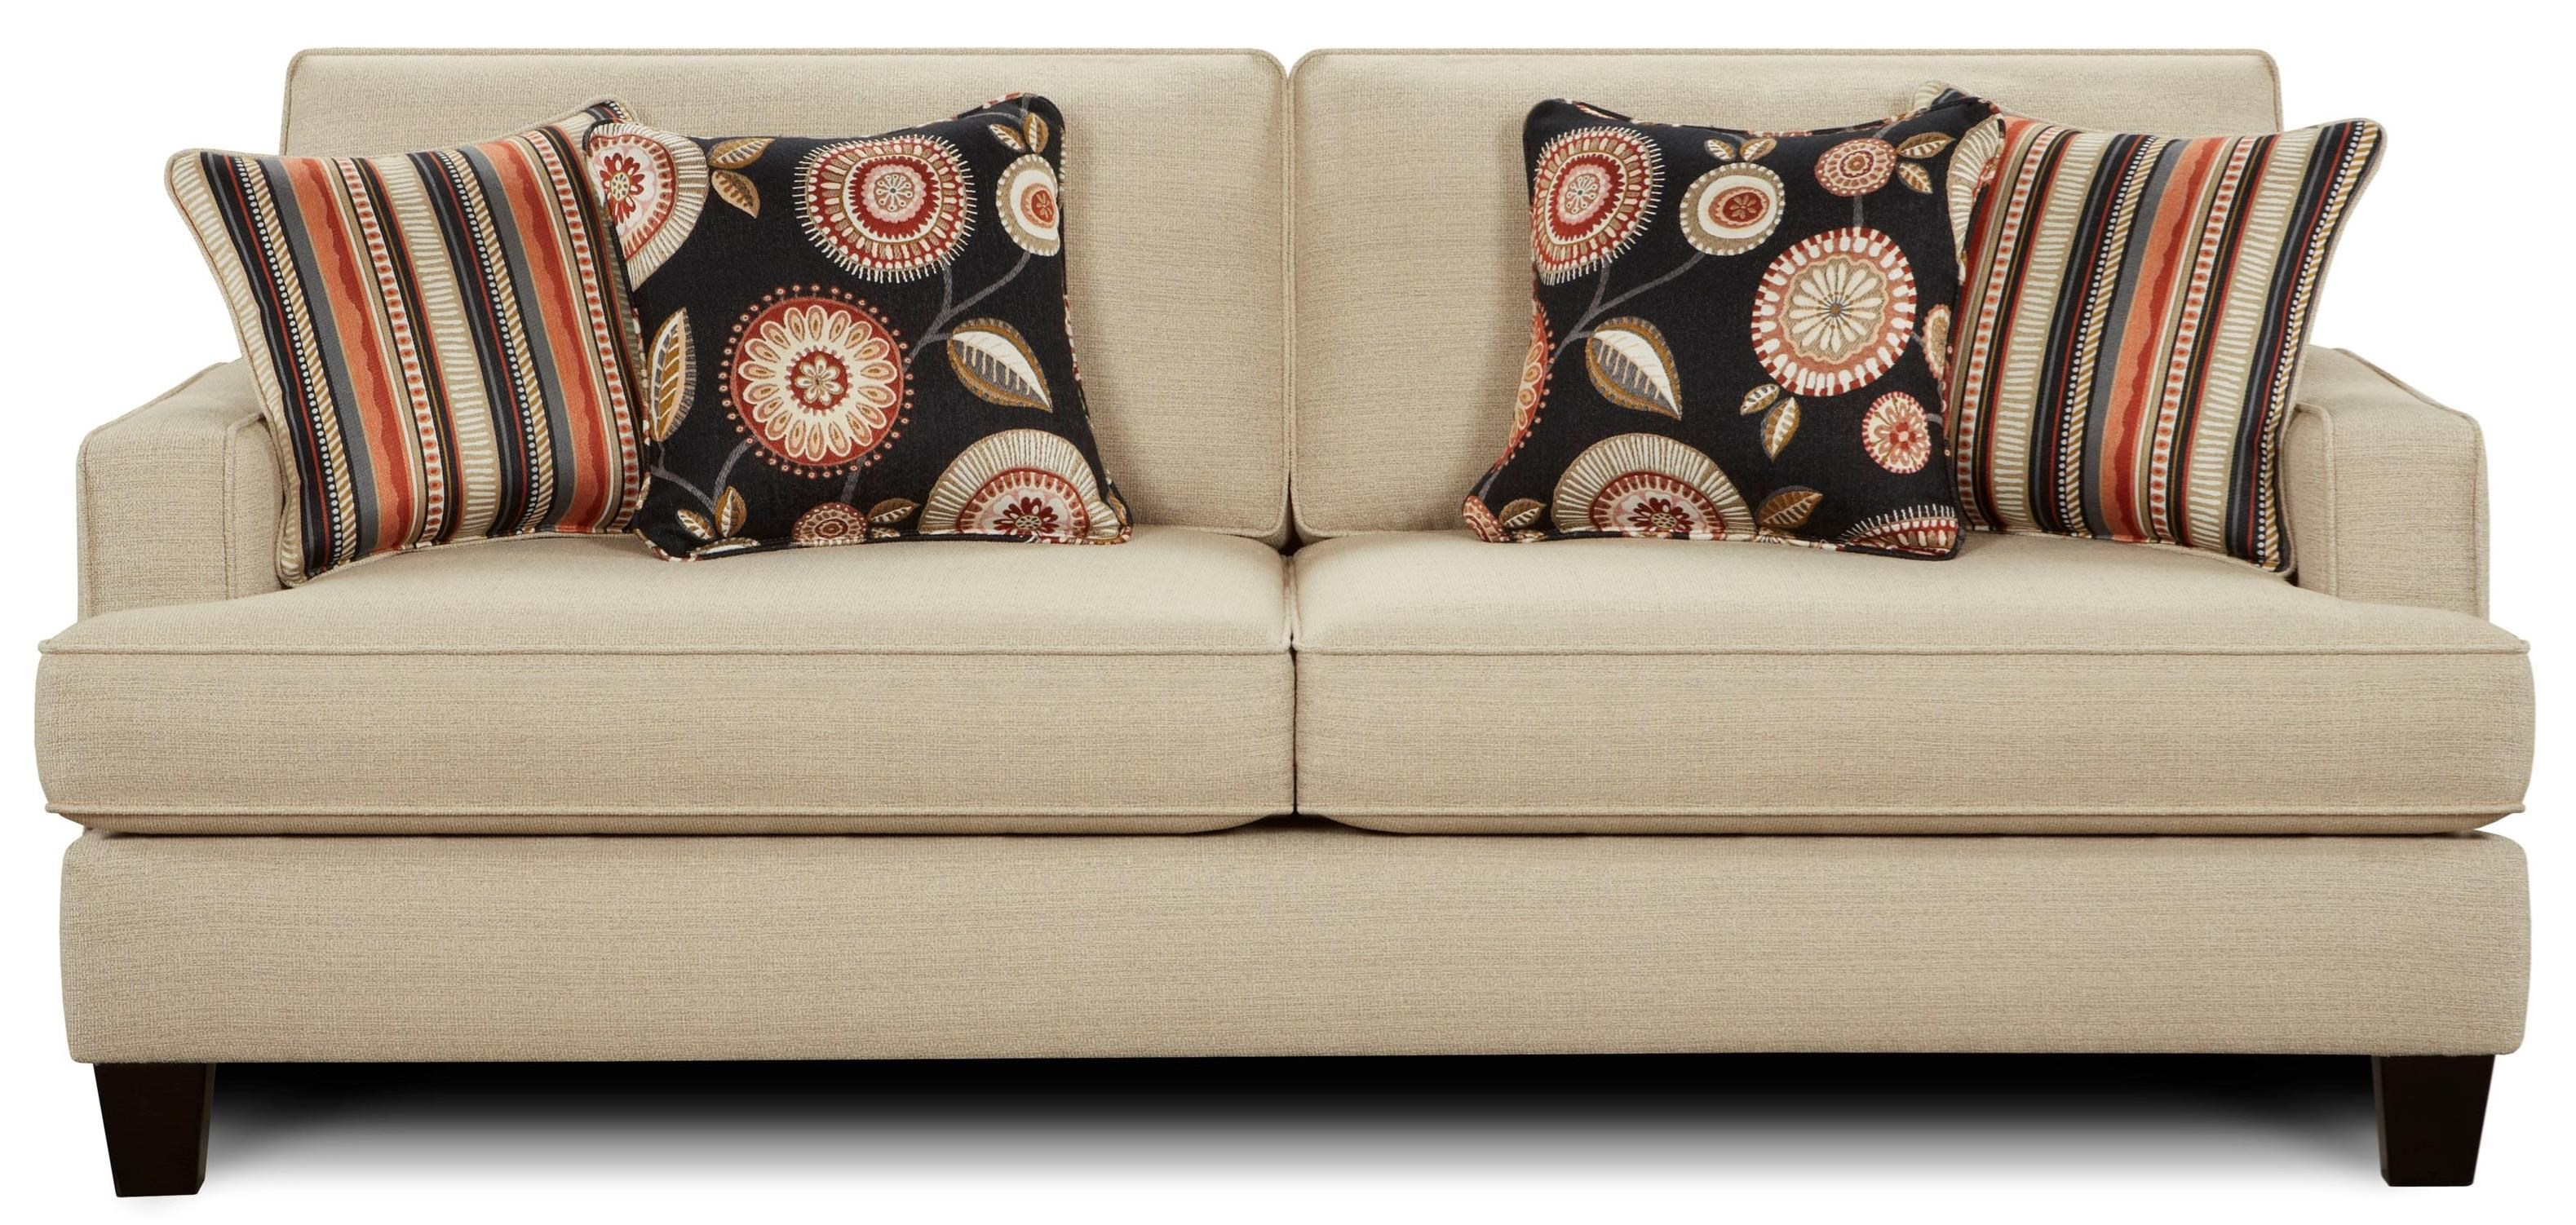 Fusion Furniture 2490 Stationary Sofa - Item Number: 2490New Siam Parchment